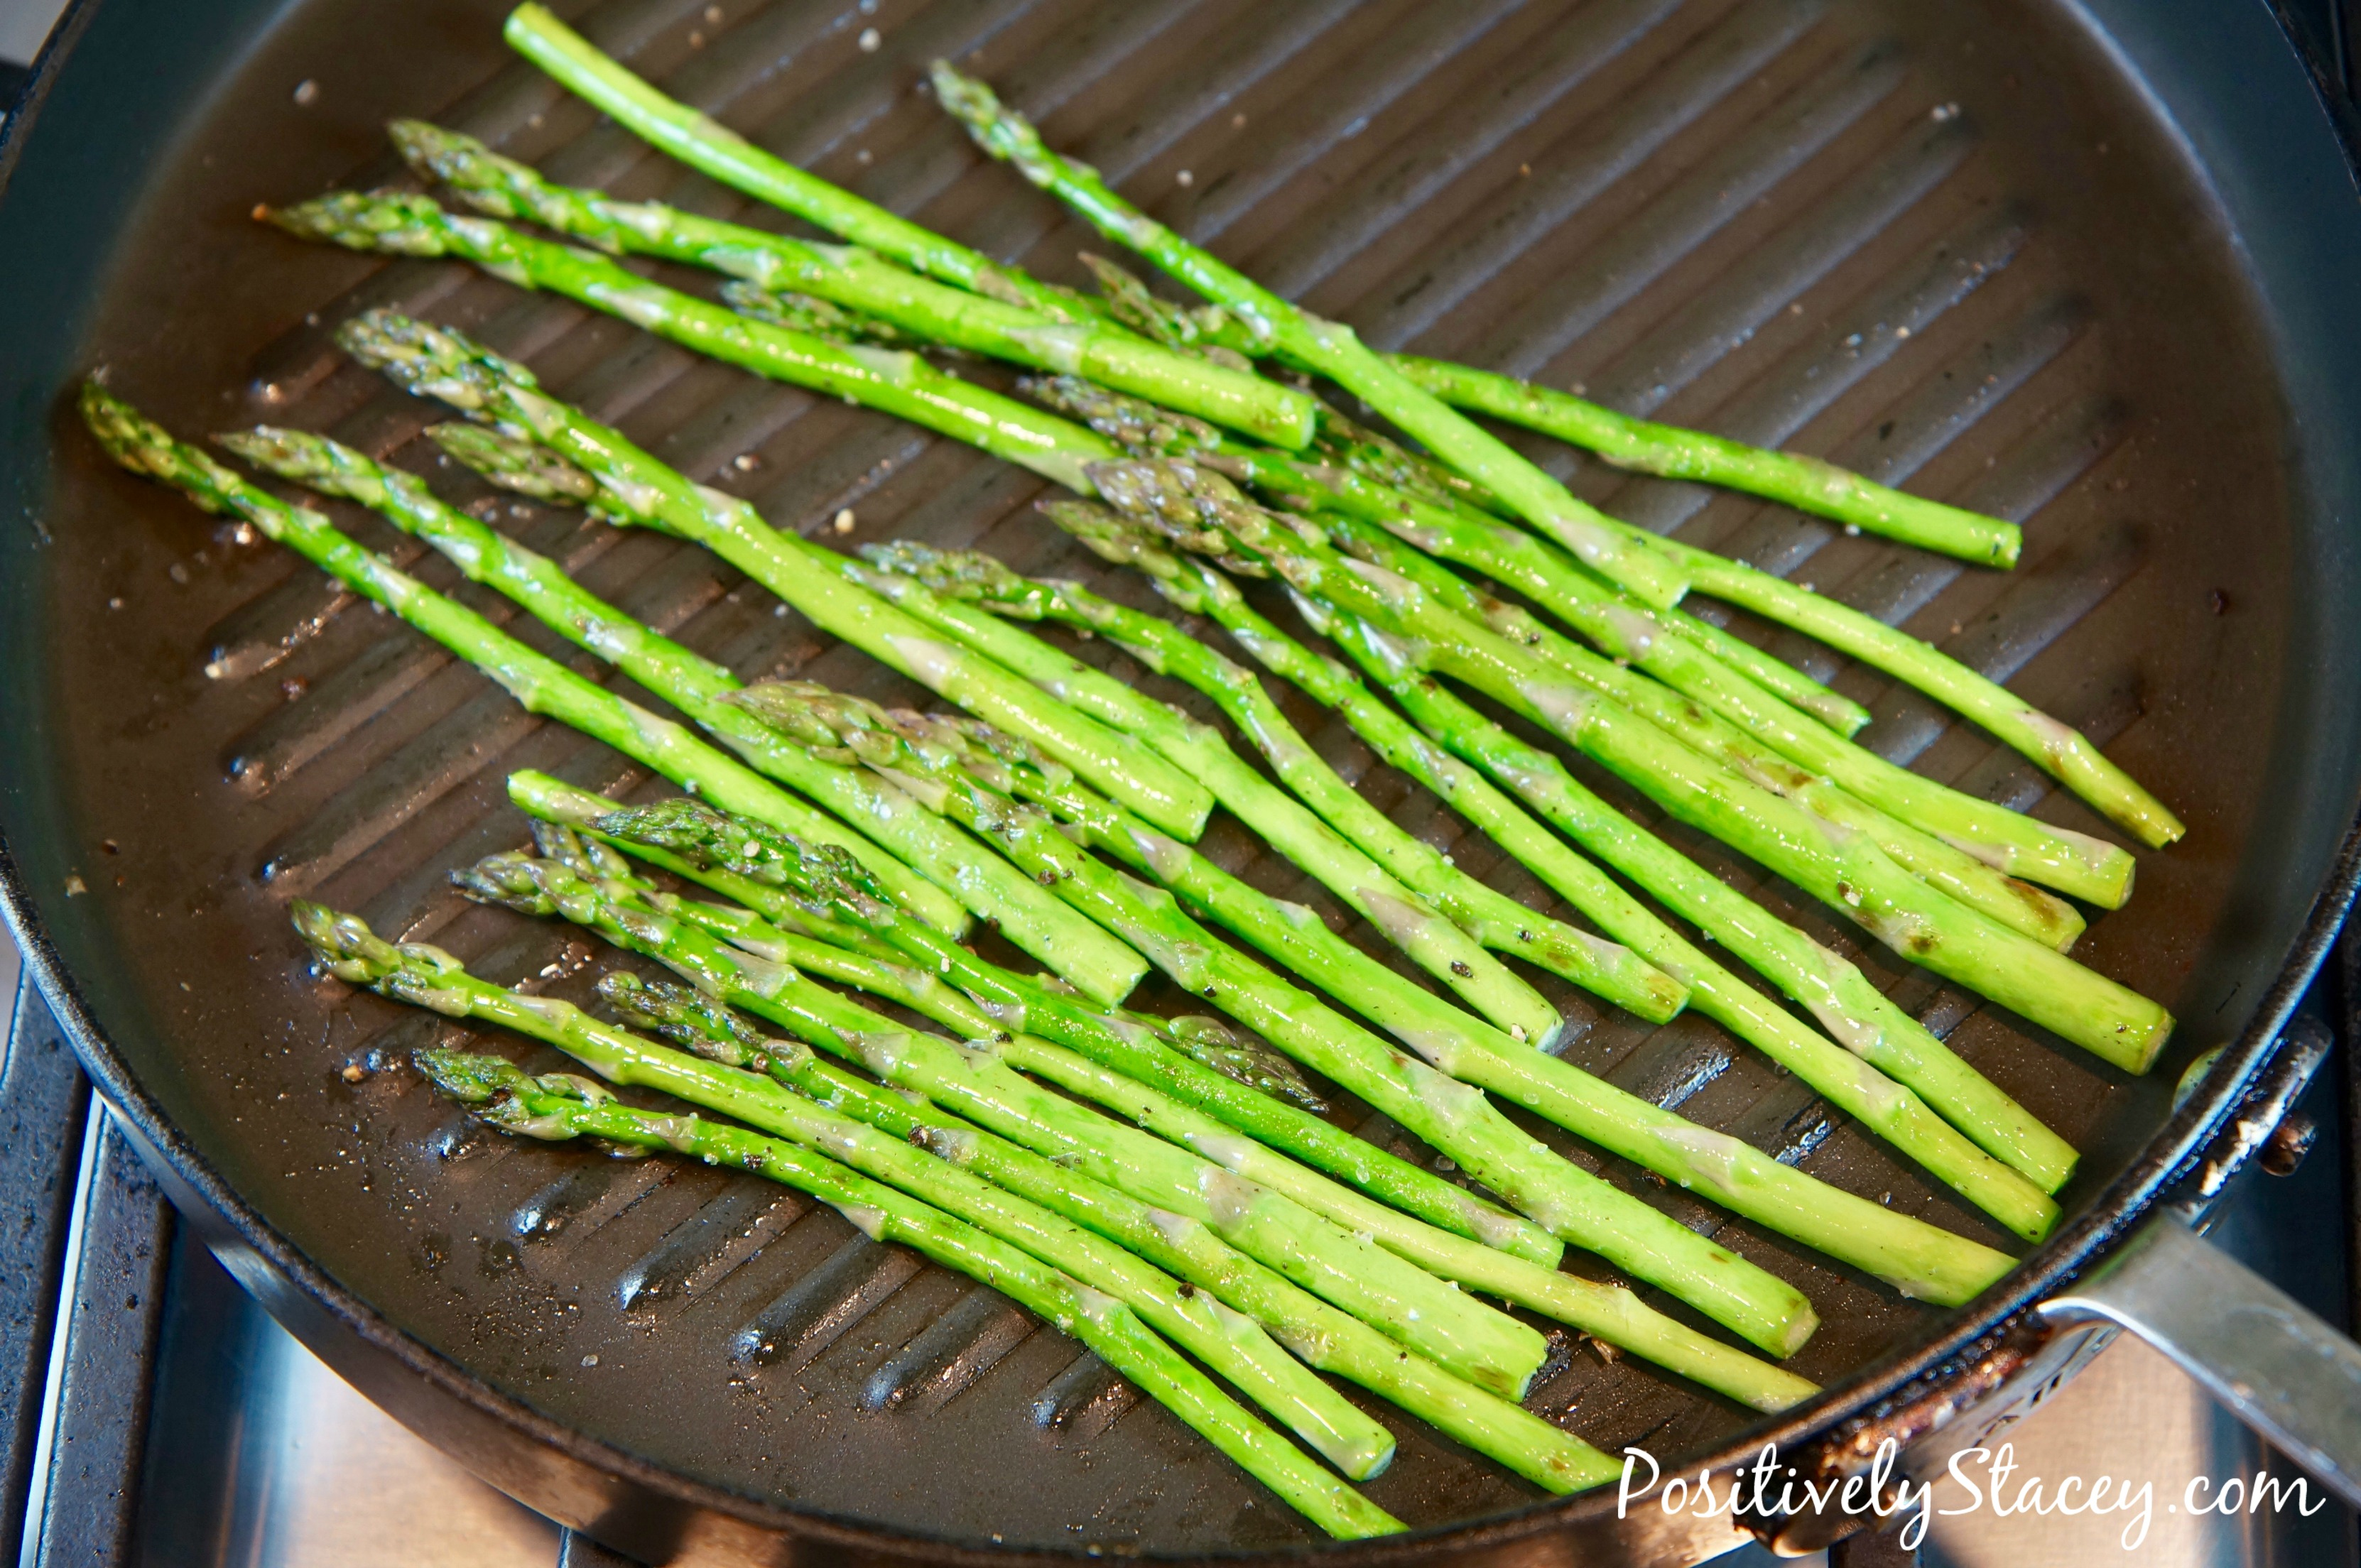 Grilled Asparagus How To Make Easy Baconwrapped Filet Mignon Positively  Stacey